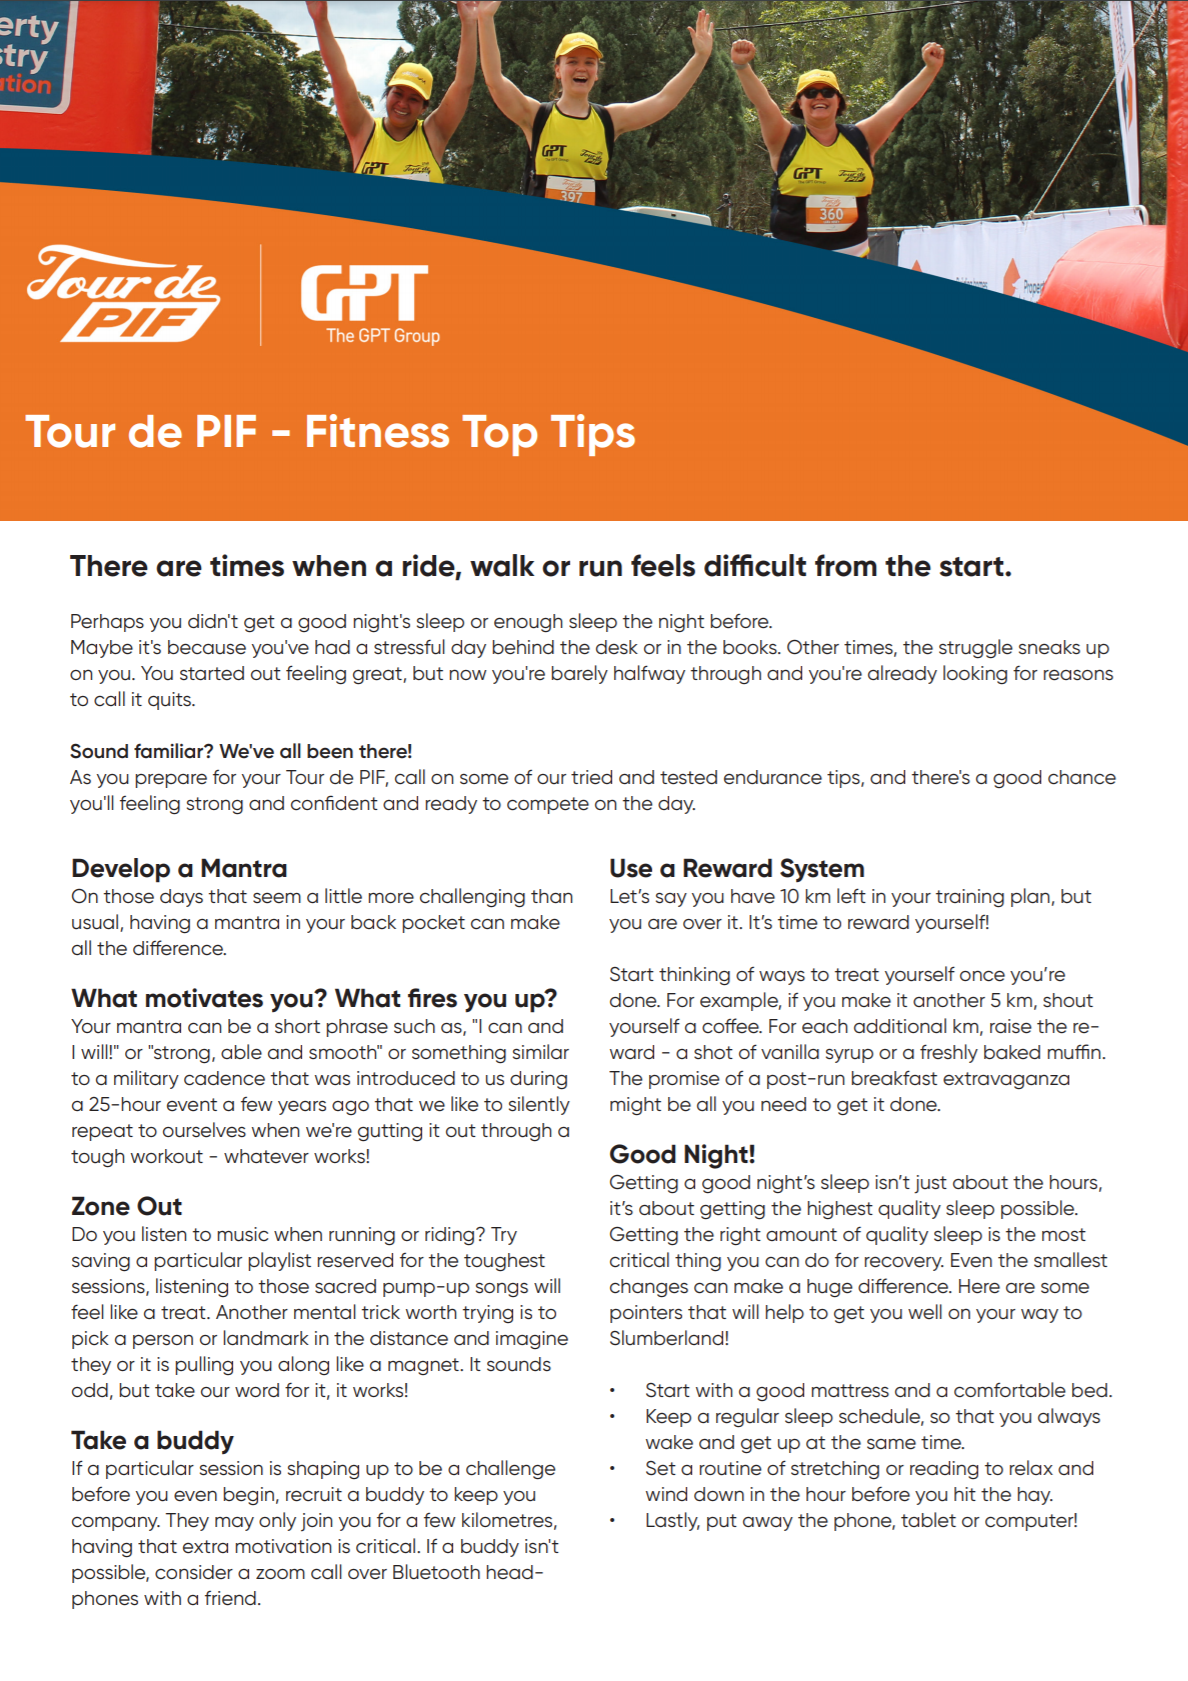 TDP Fitness tips